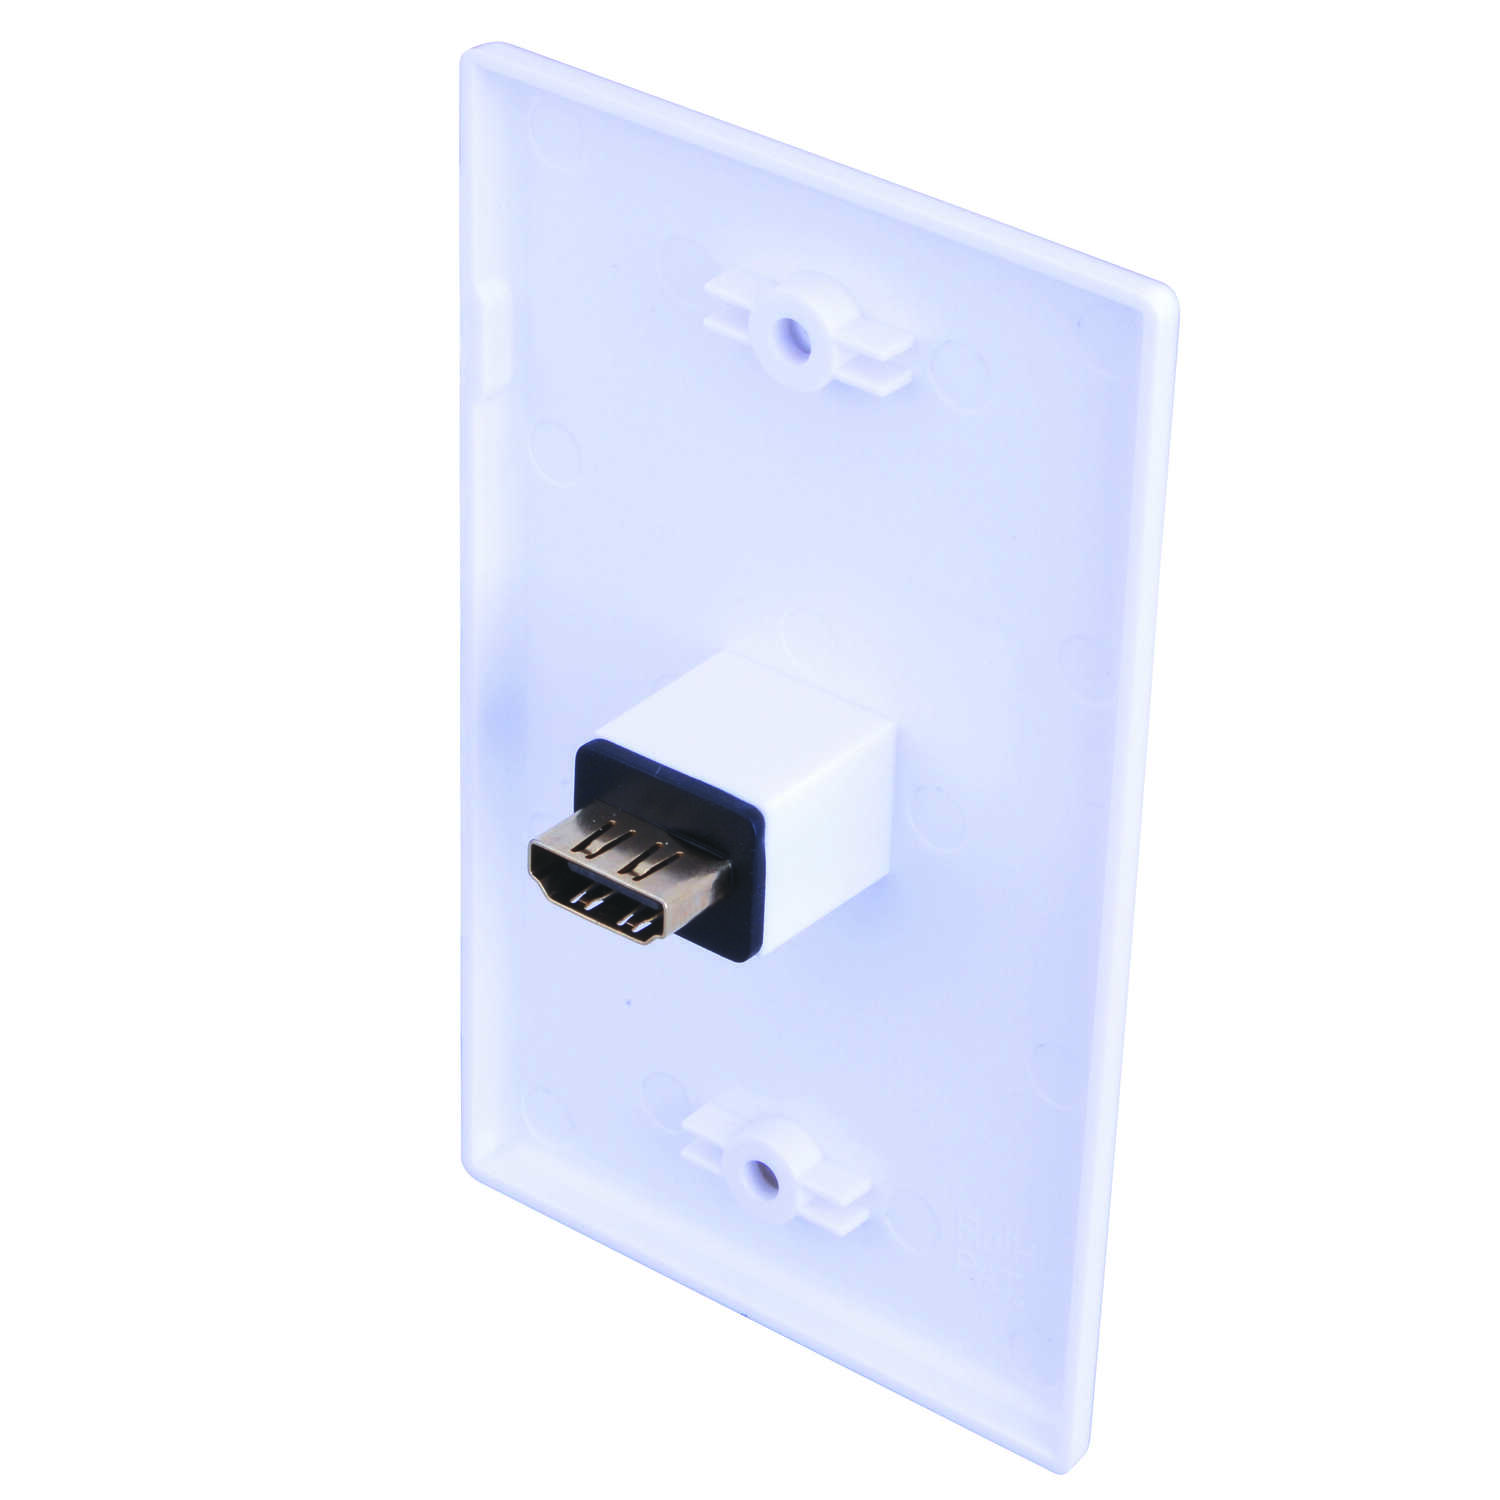 Monster Cable  Just Hook It Up  White  1 gang Plastic  Home Theater  Wall Plate  1 pk